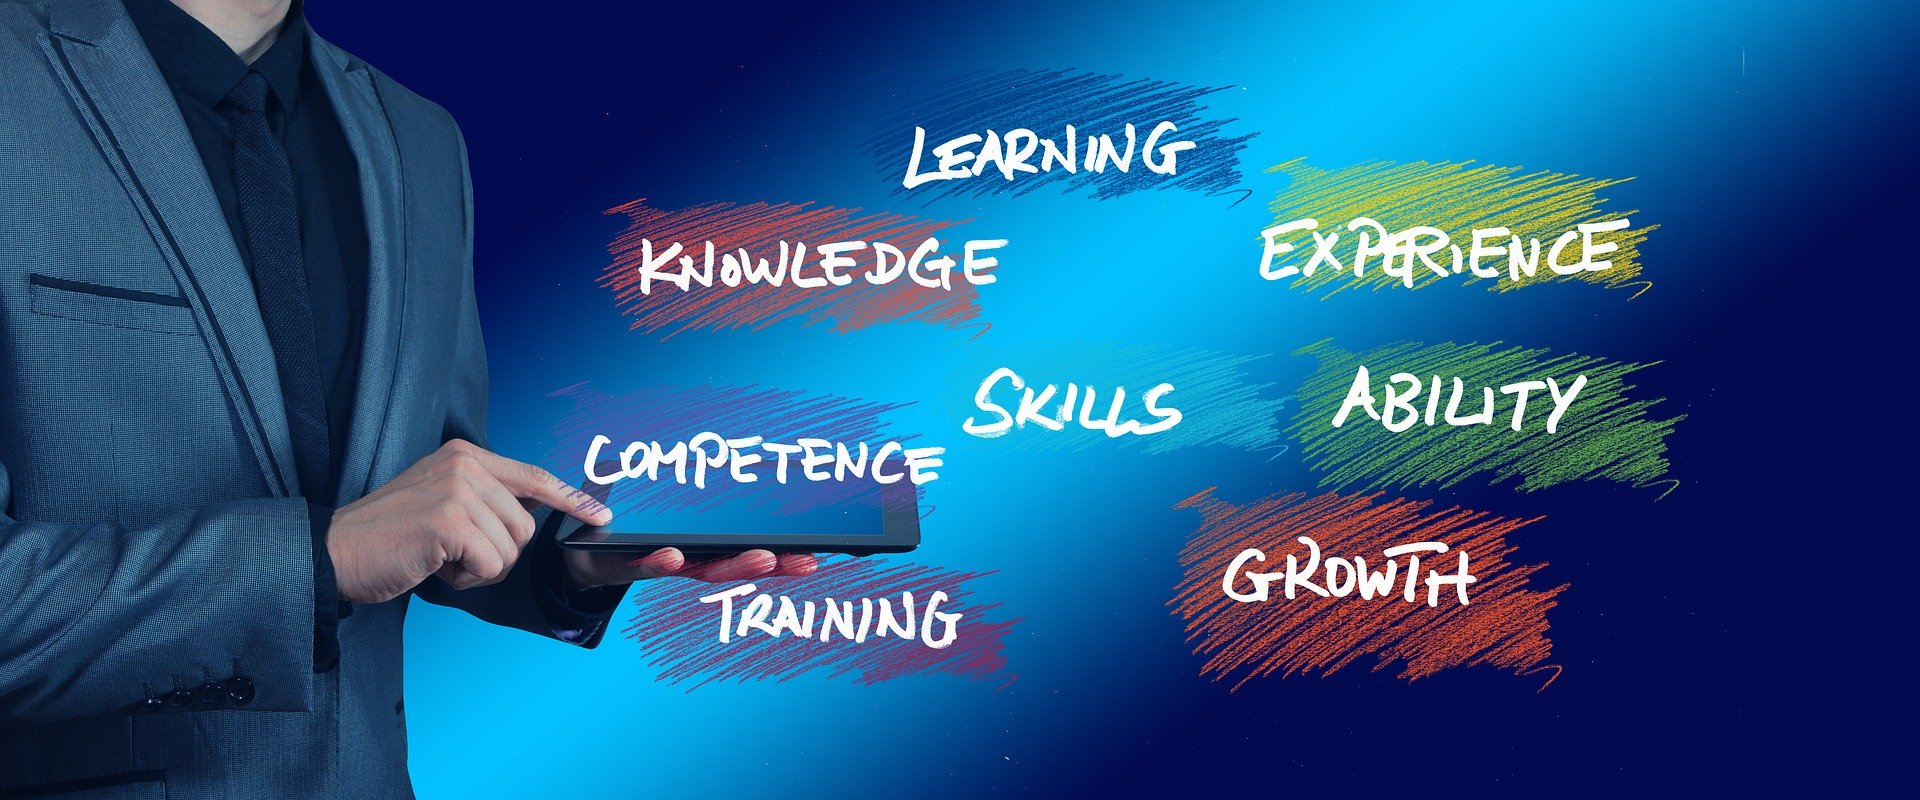 business skills image for business webpage